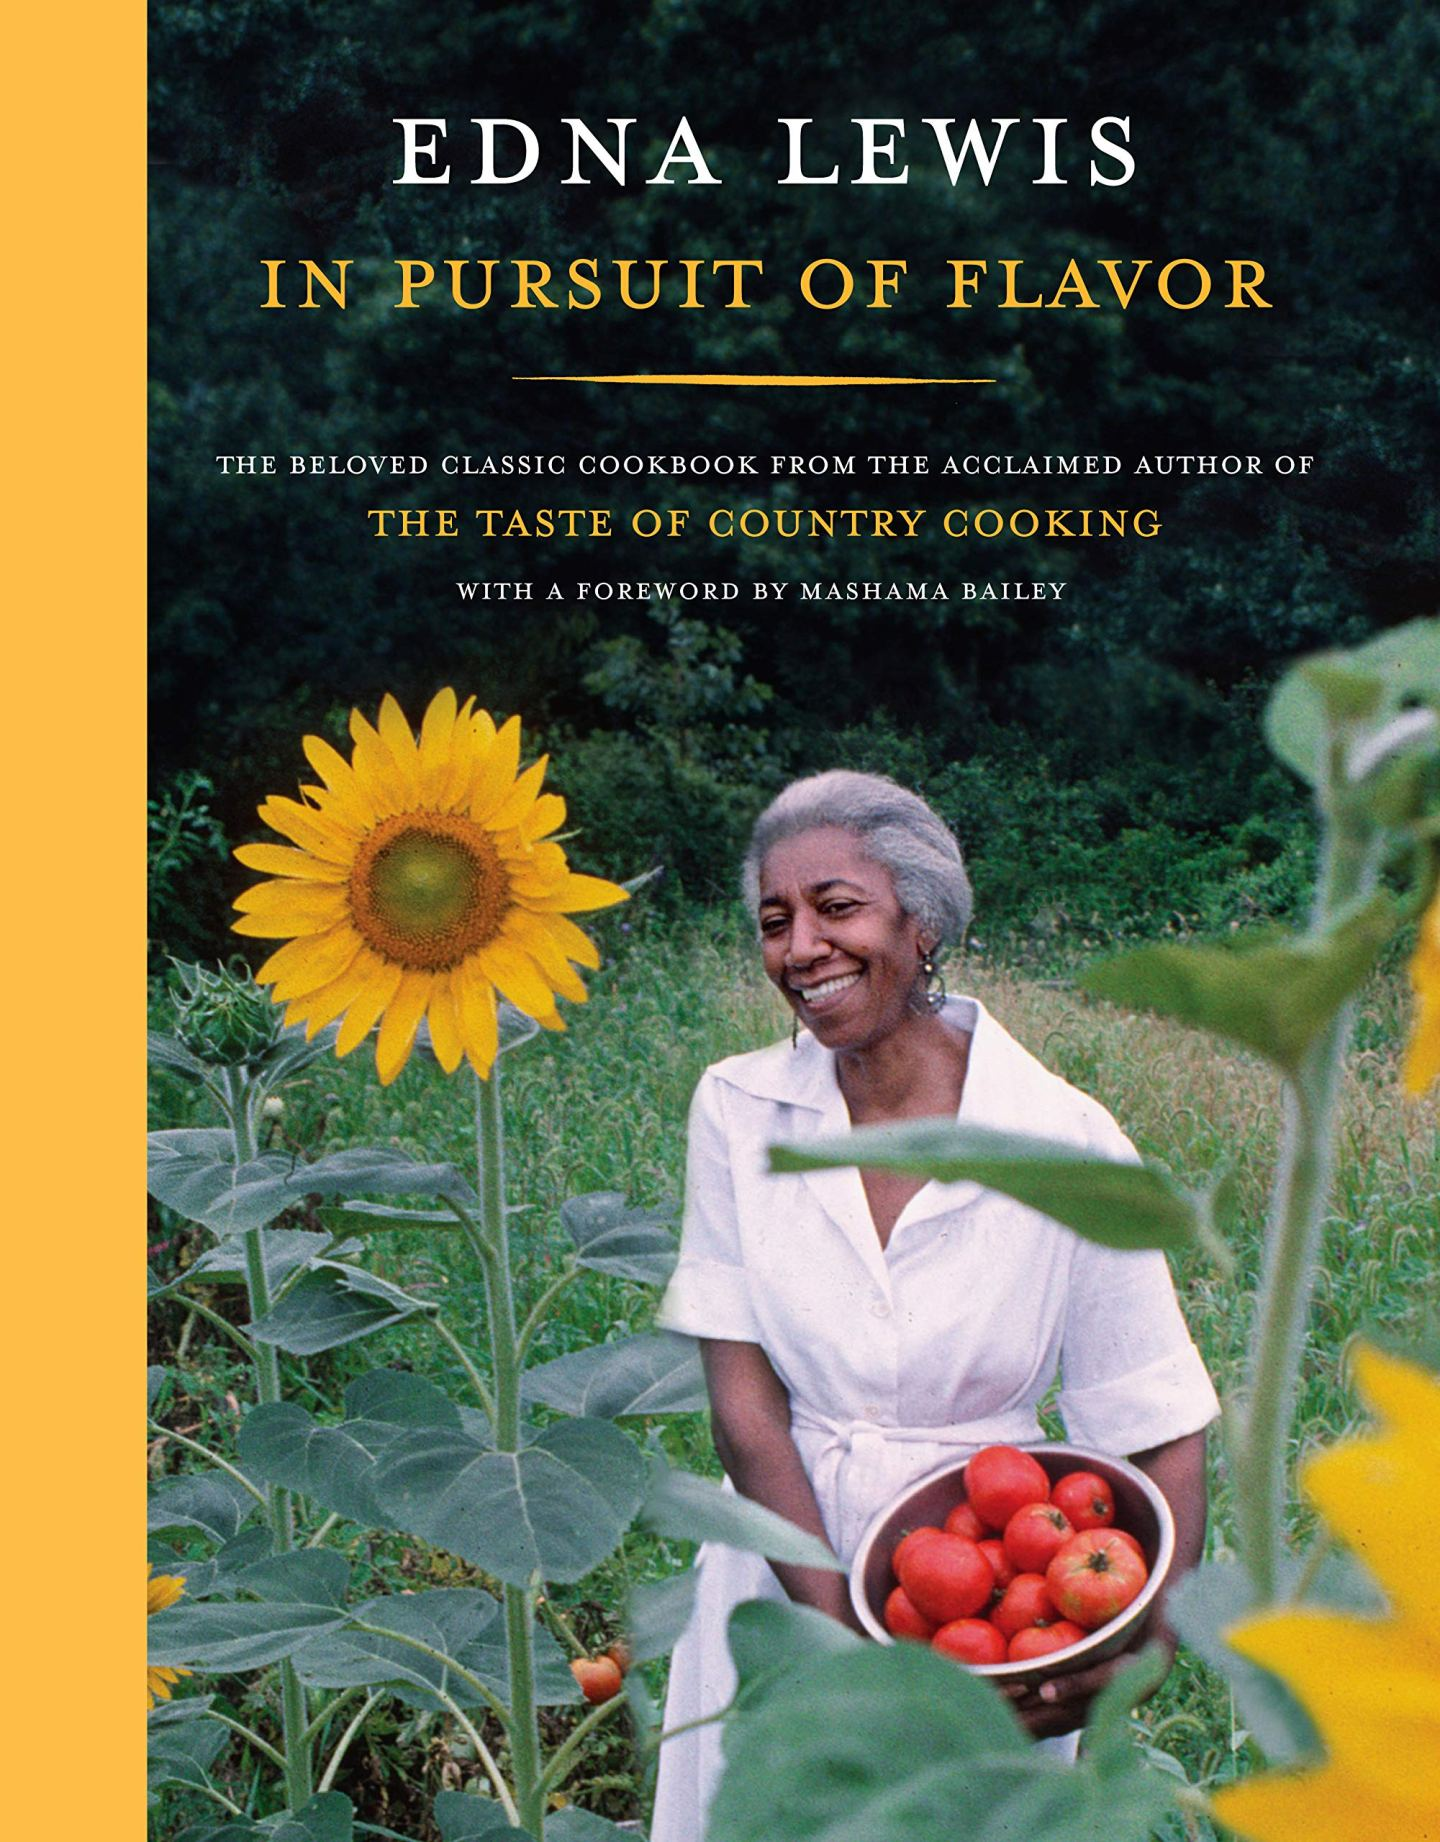 91IYD33gQcL-1440x1842 Soul Food Cookbooks We Love by 3 Black Southern Belle Legends of Food